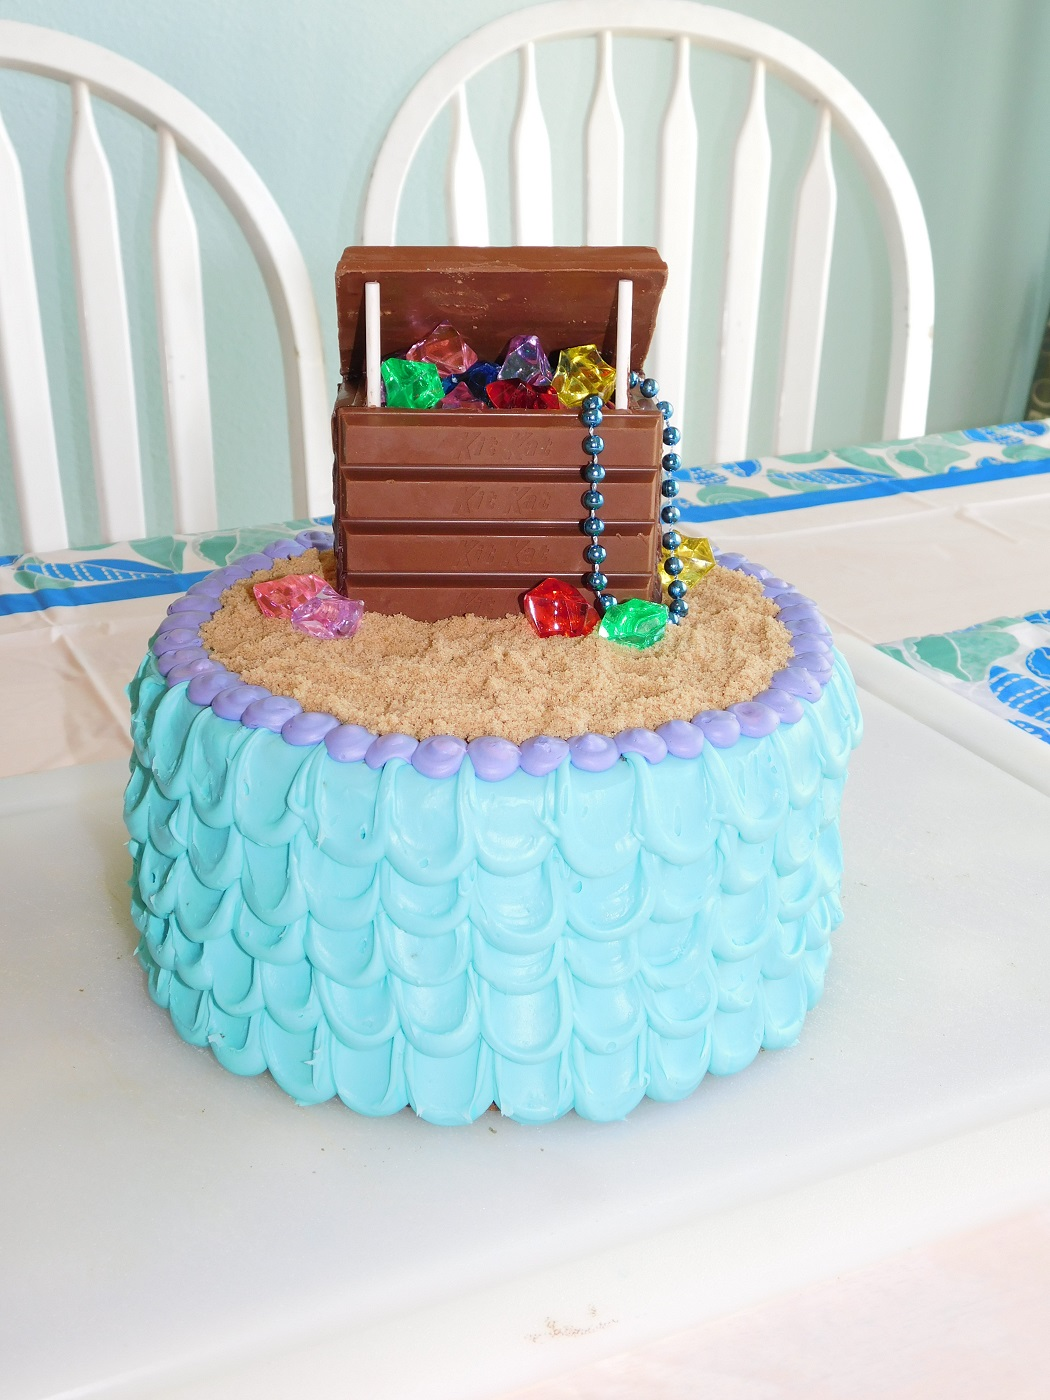 Clever Crafty Cookin Mama Mermaid Treasure Cake